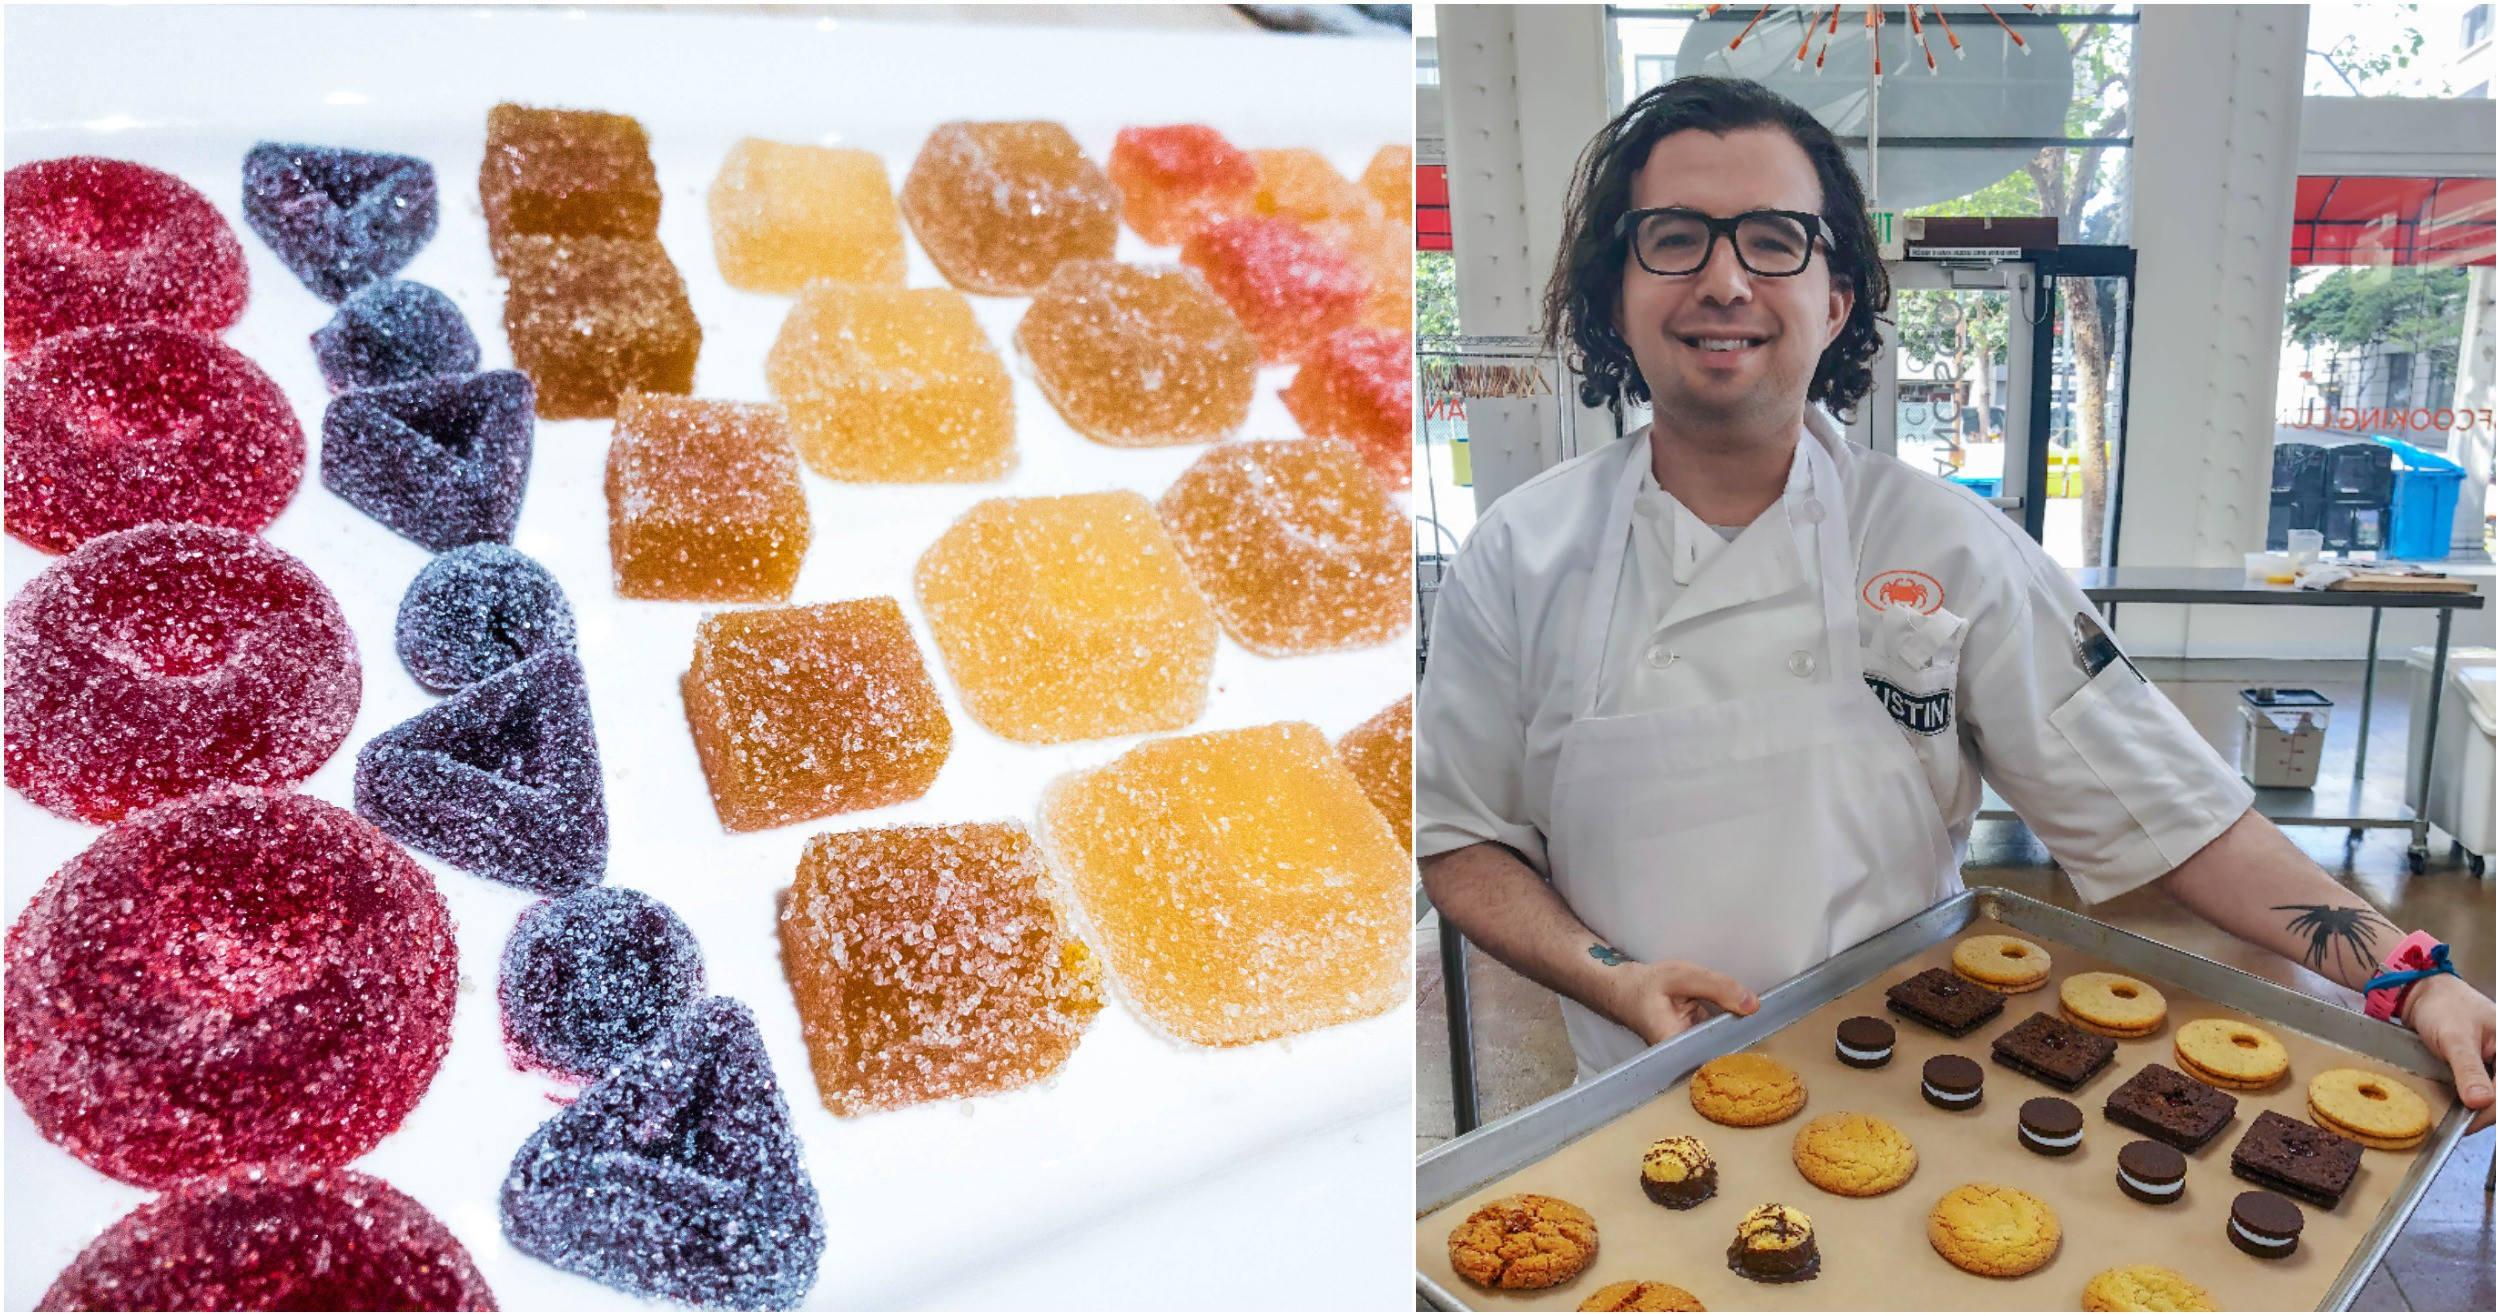 Pastry Chef School: Gummy Bears, Marshmallows, Nougat, Pate